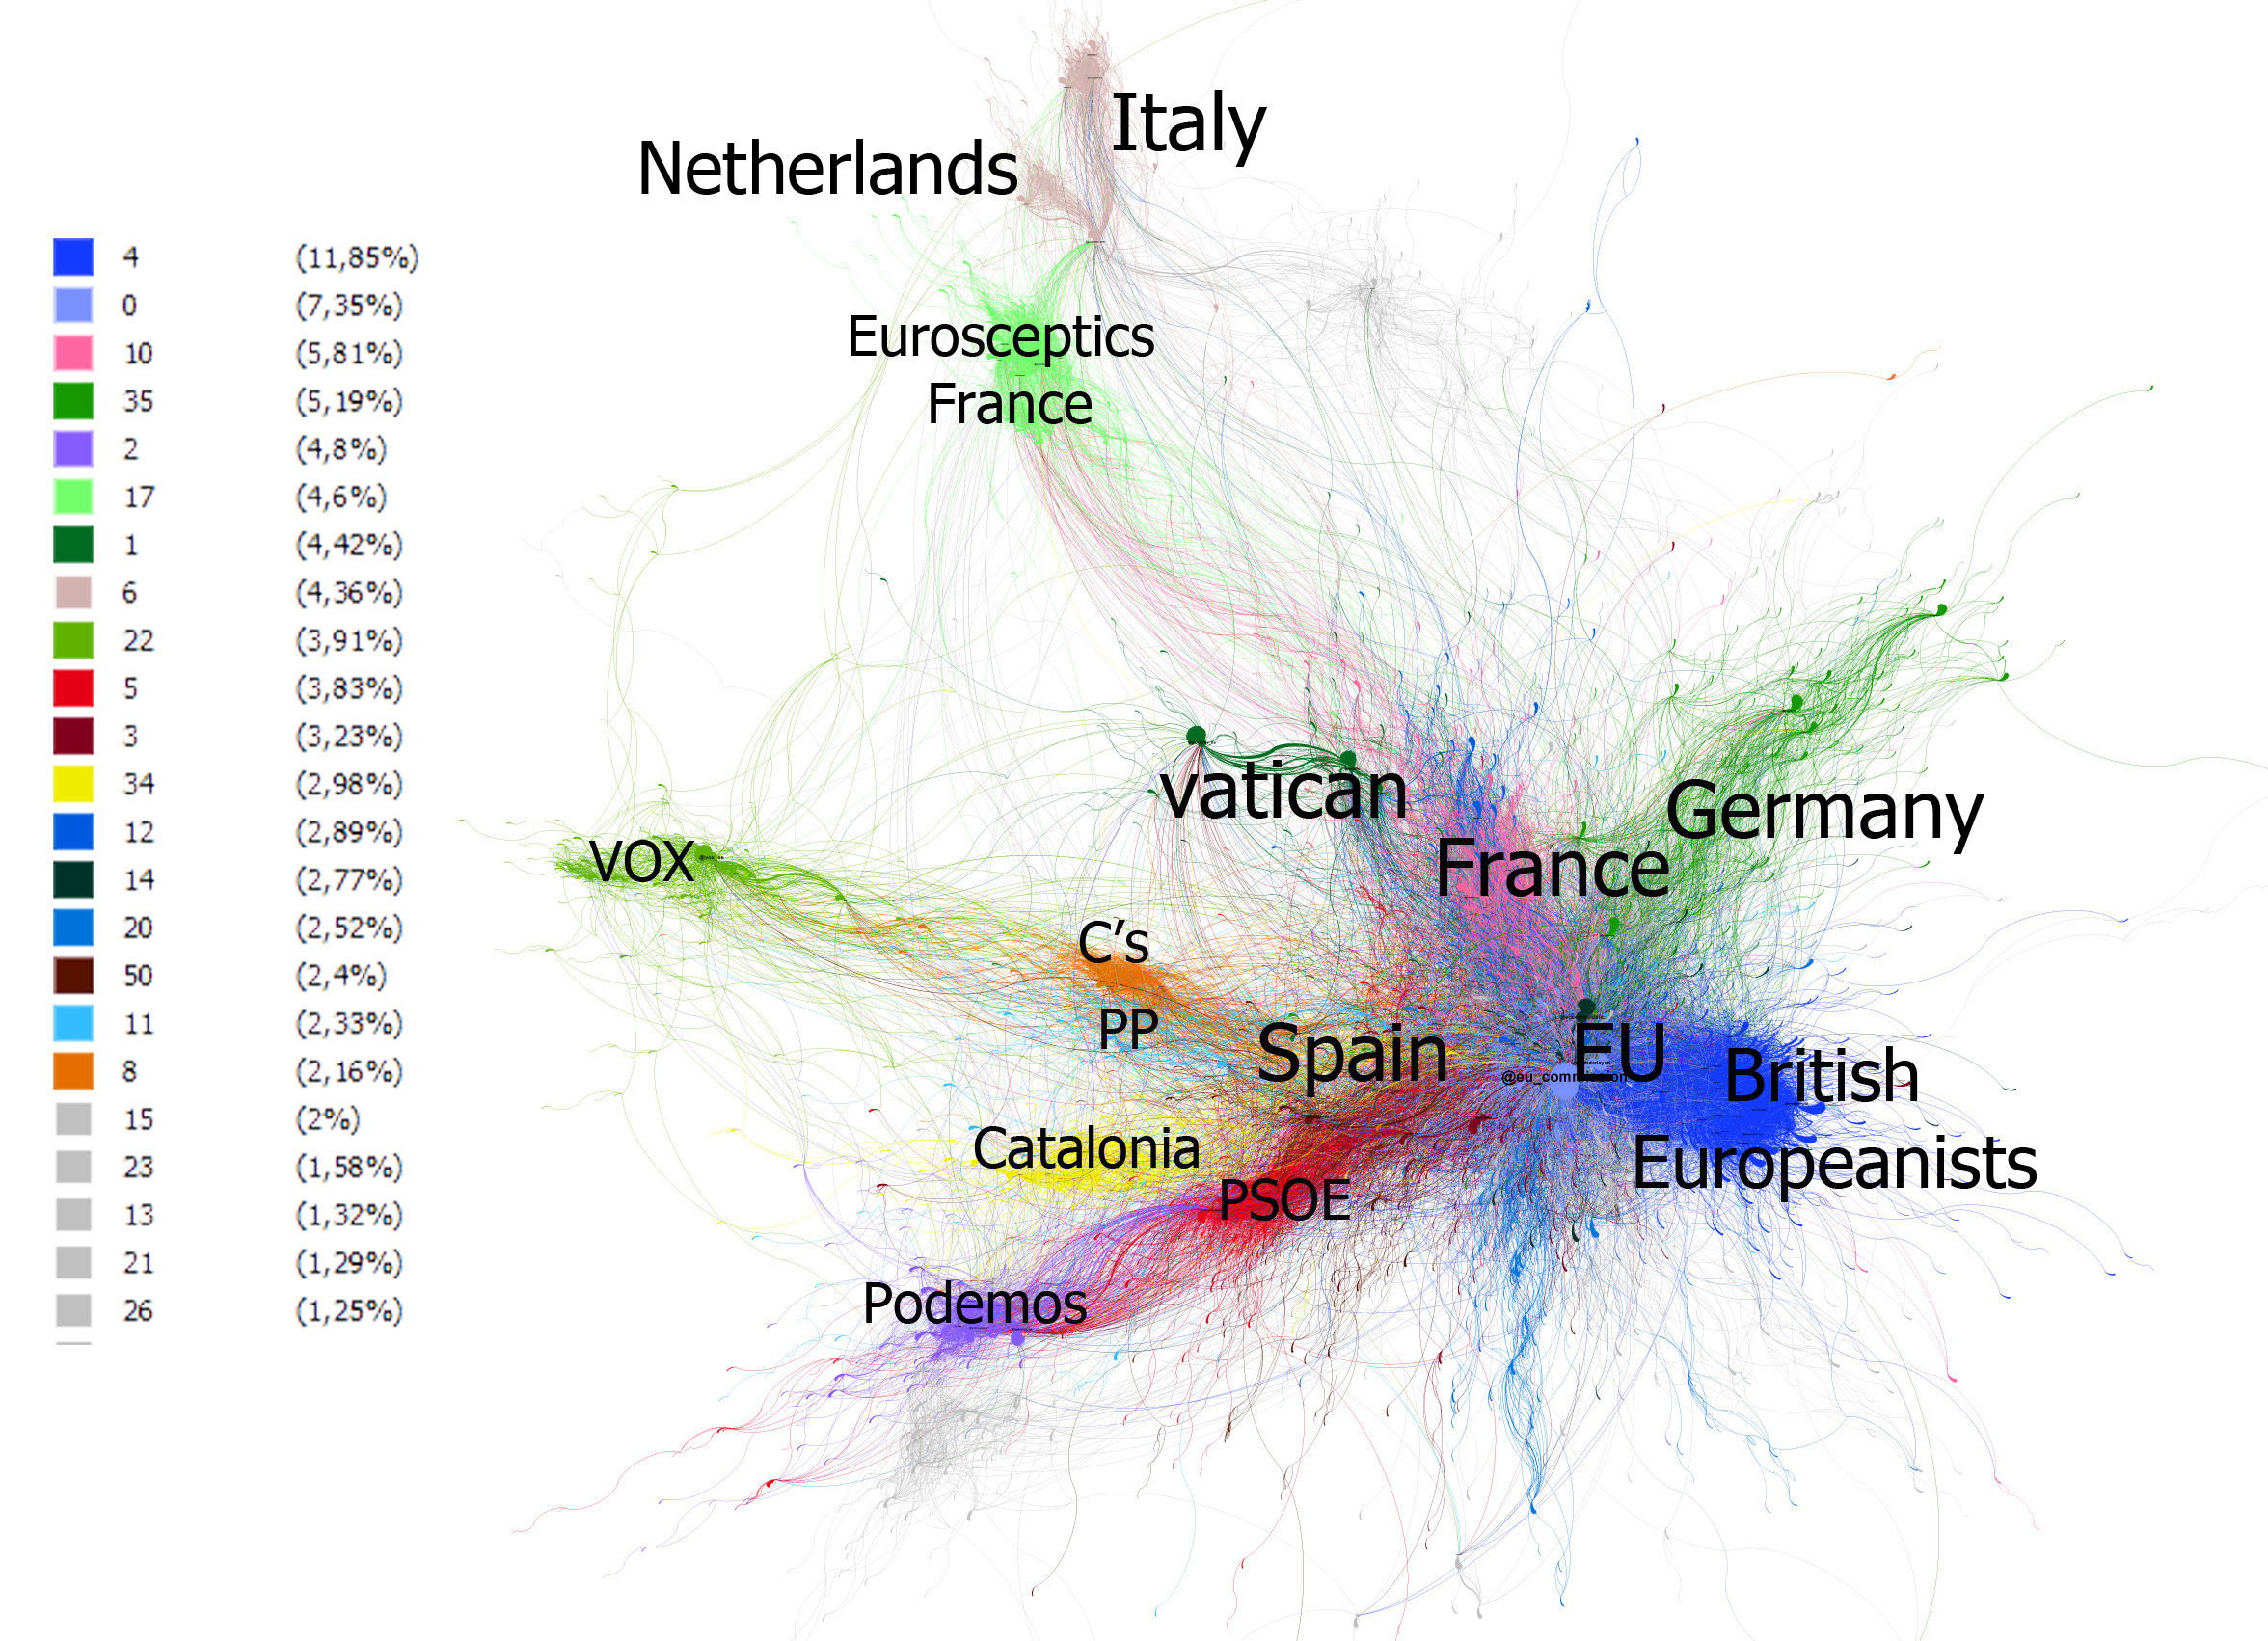 GRAPH 2. TWEET DISSEMINATION BY COMMUNITY IN 2020